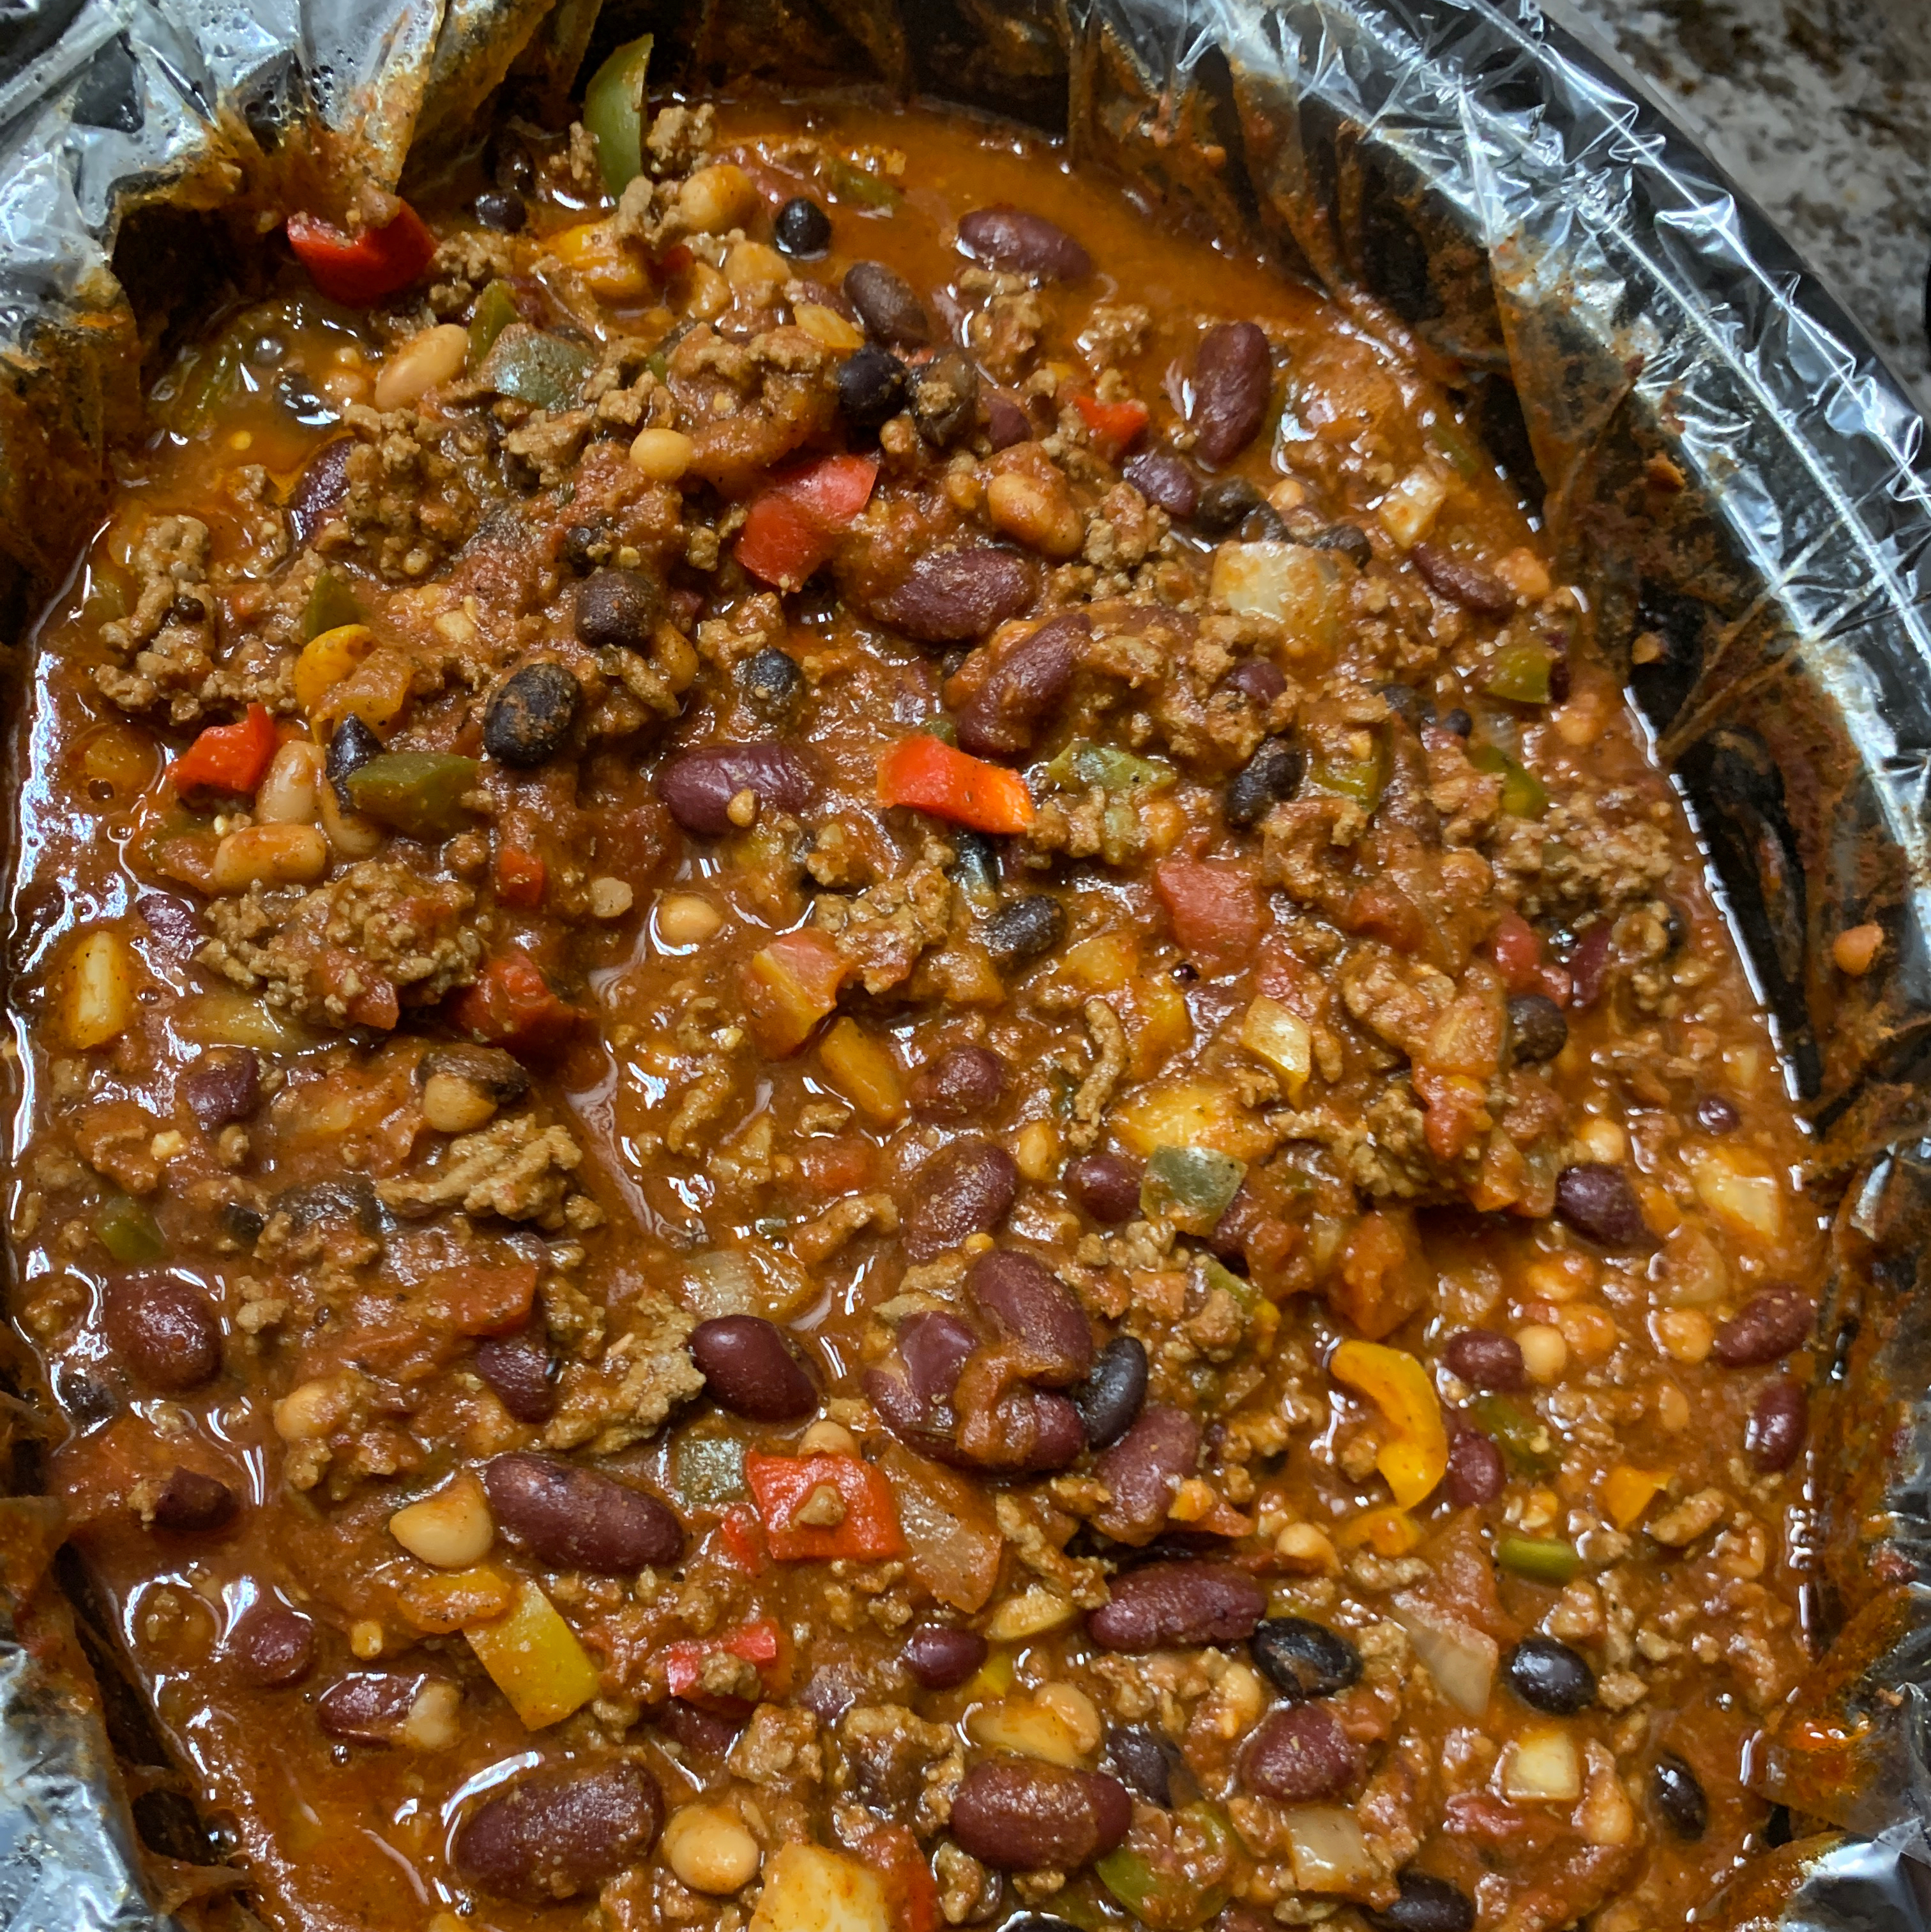 Christina's Slow Cooker Chili Maribel Escareno